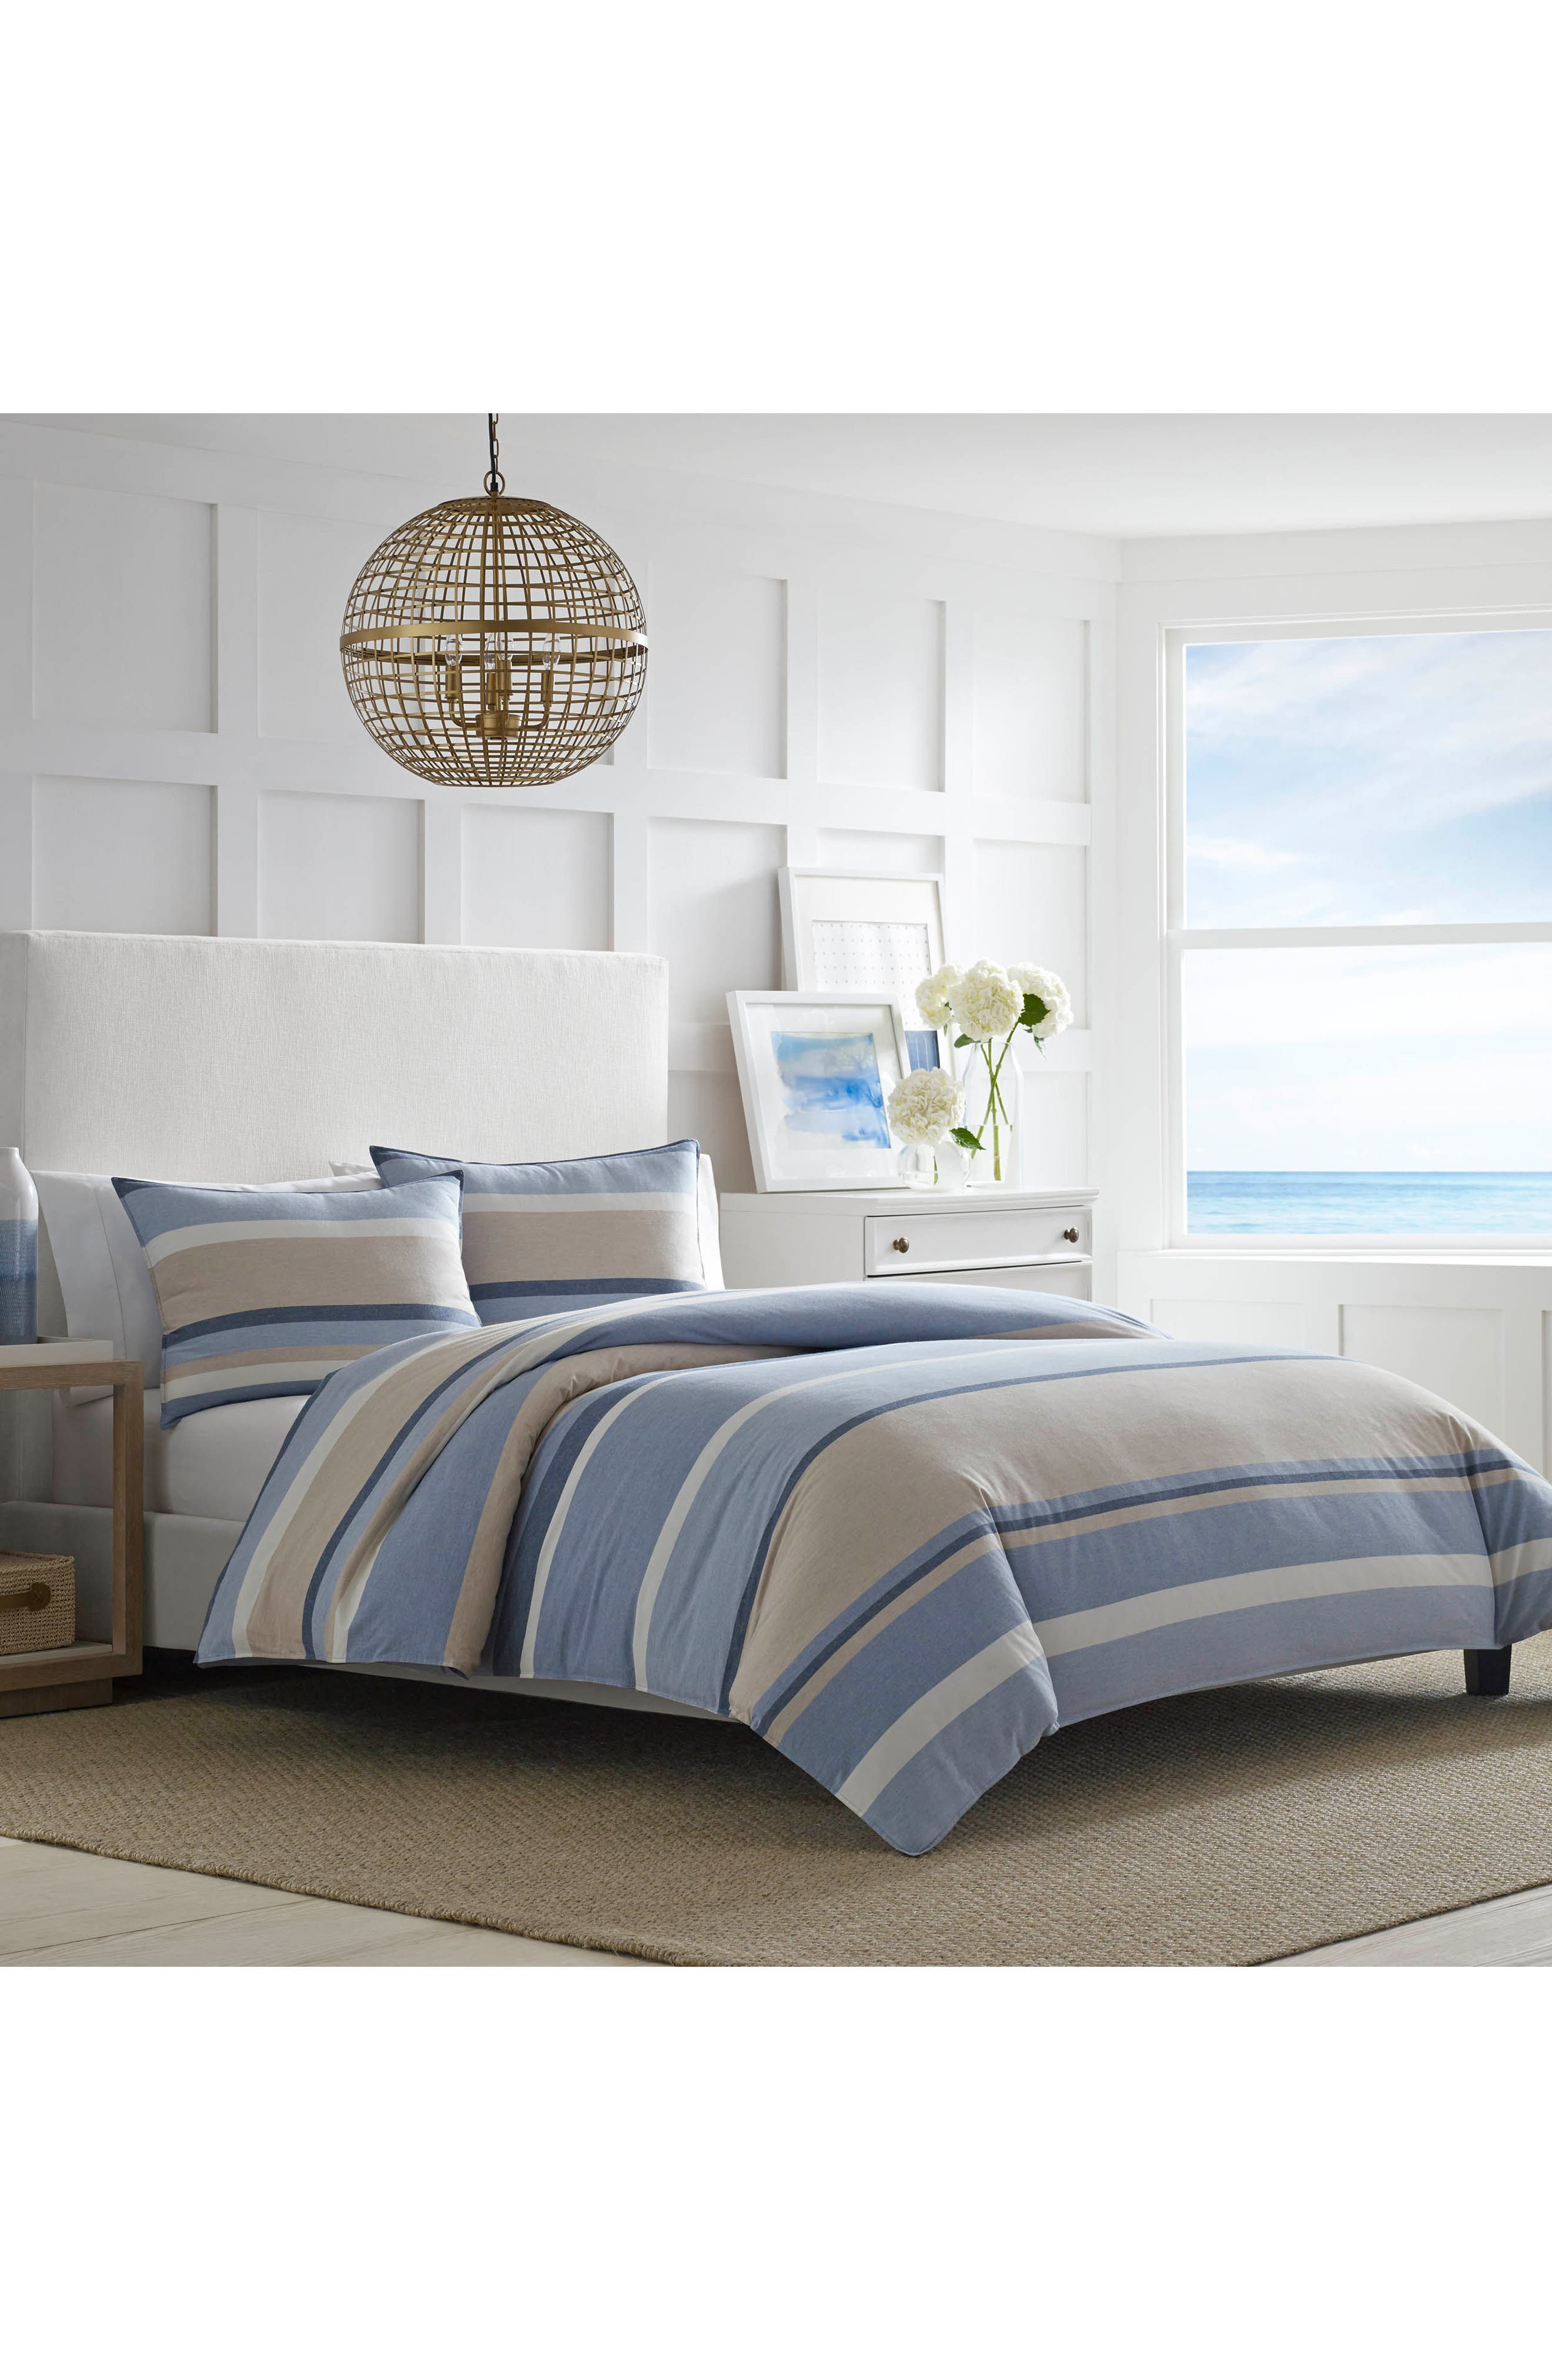 Abbot Duvet Cover & Sham Set,                         Main,                         color, Medium Blue